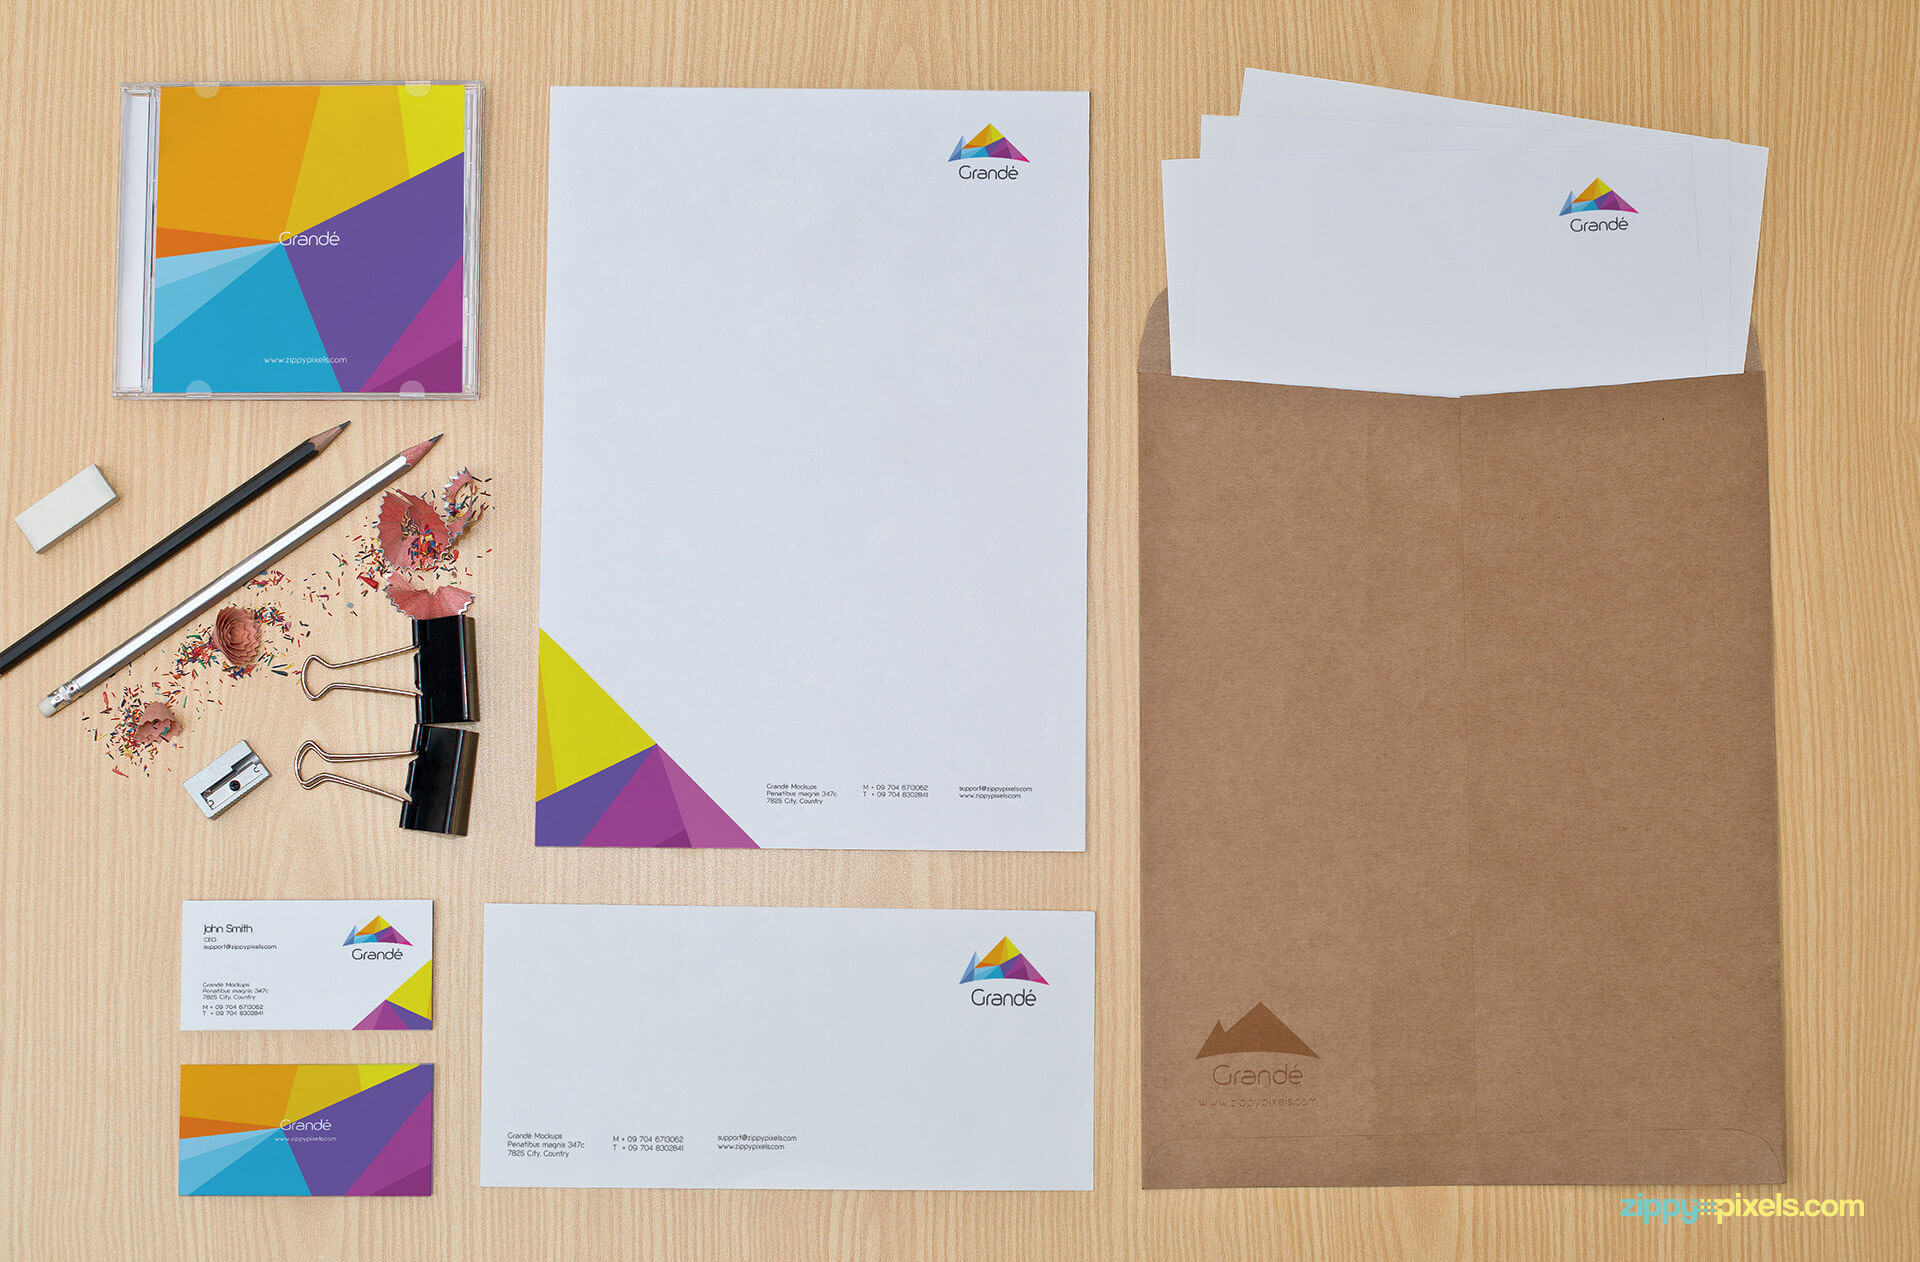 Brand Identity Stationery Mockup with Letterhead, Envelopers